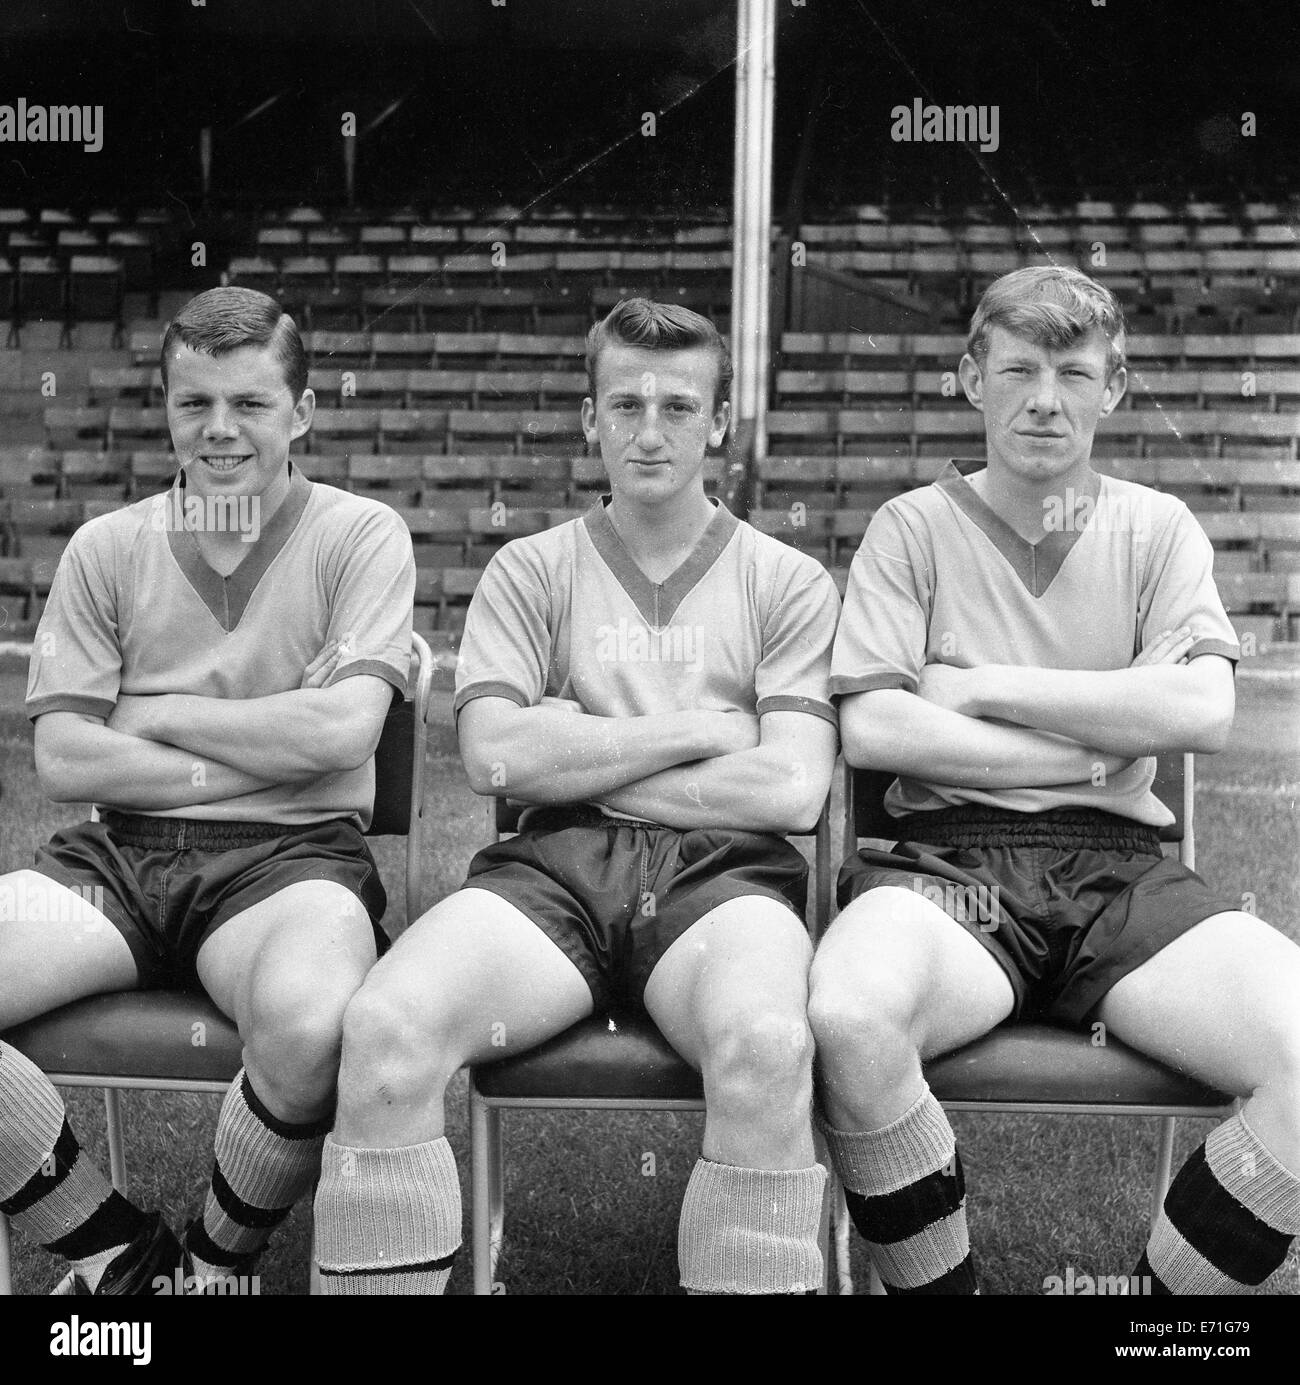 Vic Povey, Clive Ford and Alan Hinton Wolverhampton Wanderers footballer August 3rd 1962 - Stock Image